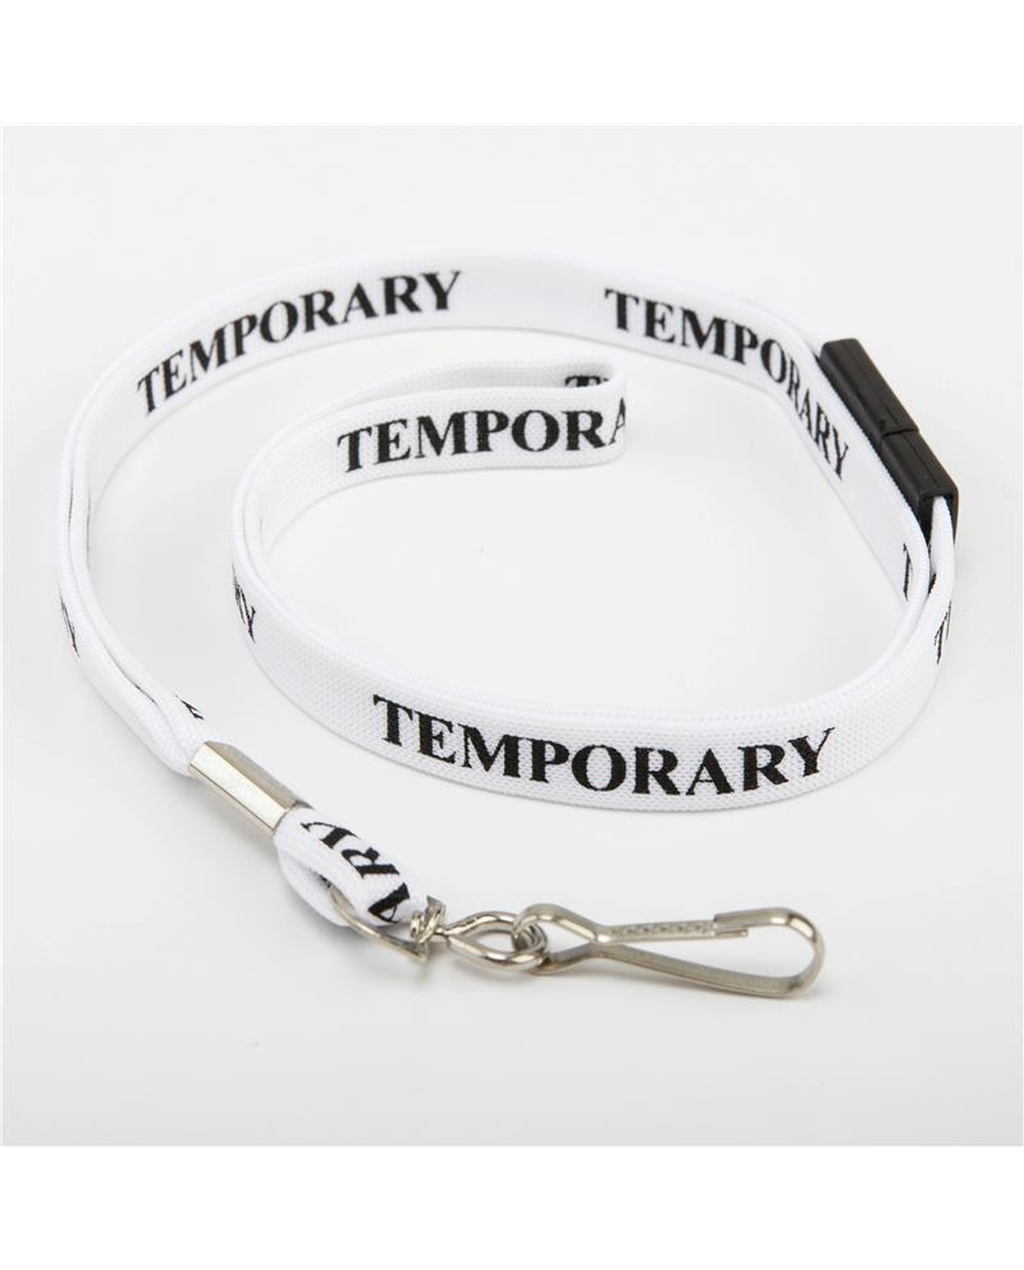 10 Printed Breakaway Lanyard - TEMPORARY